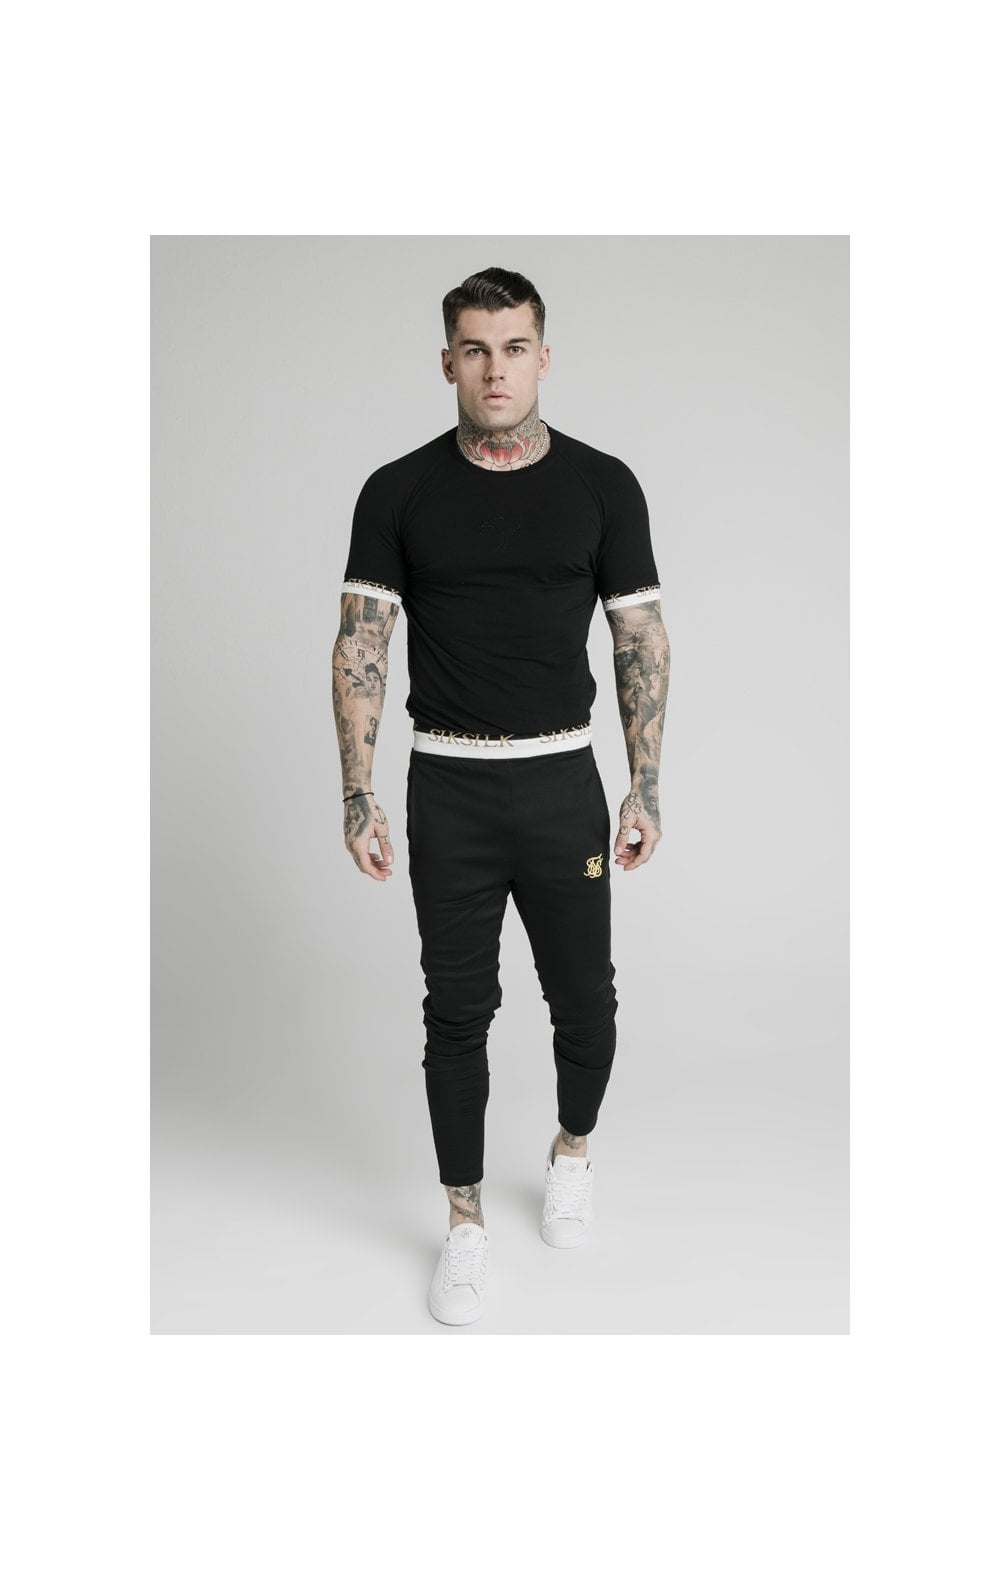 SikSilk S/S Deluxe Raglan Tech Tee - Black